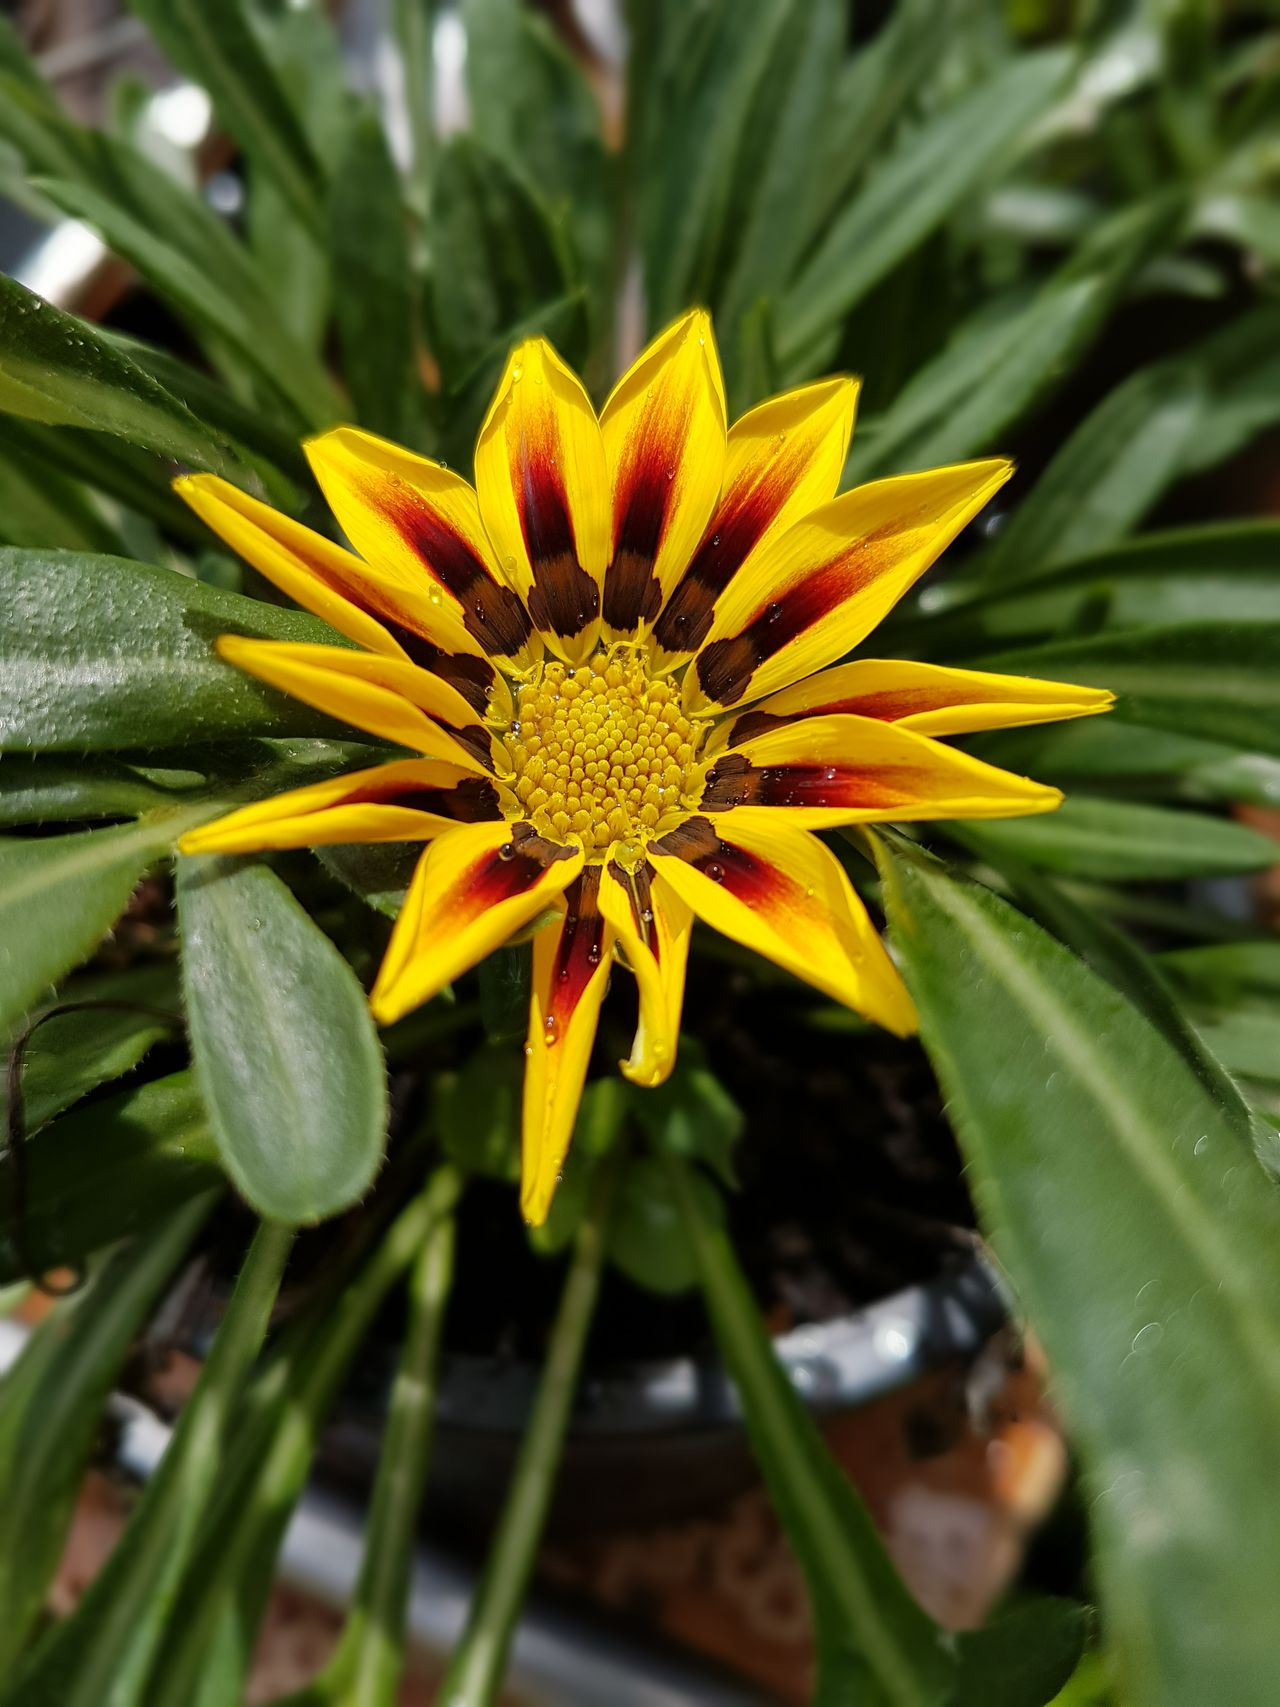 Flower Fragility Beauty In Nature Nature Growth Petal Freshness Flower Head Plant Yellow Outdoors Blooming No People Pollen Close-up Day Gazania Gazania Flower